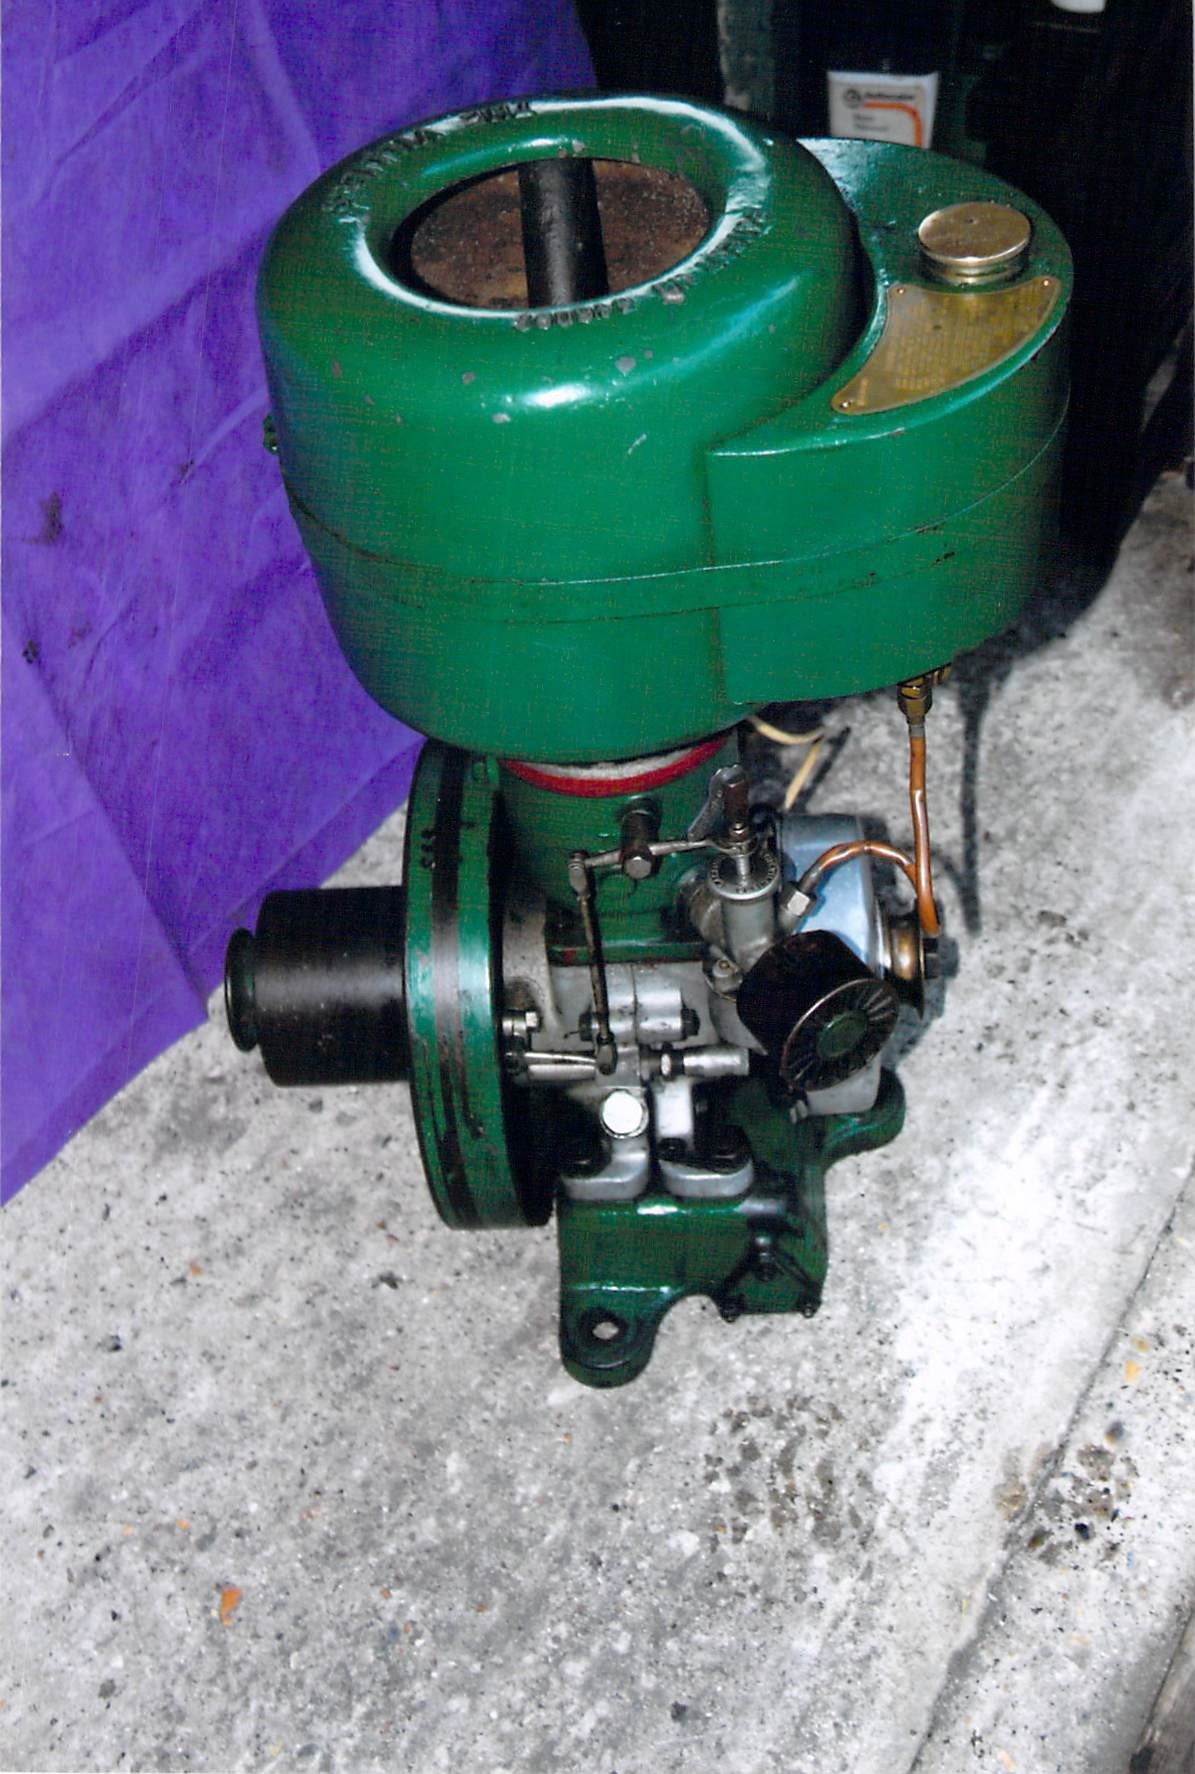 Villiers two stroke engines  Villiers Motorcycles  2019-07-08